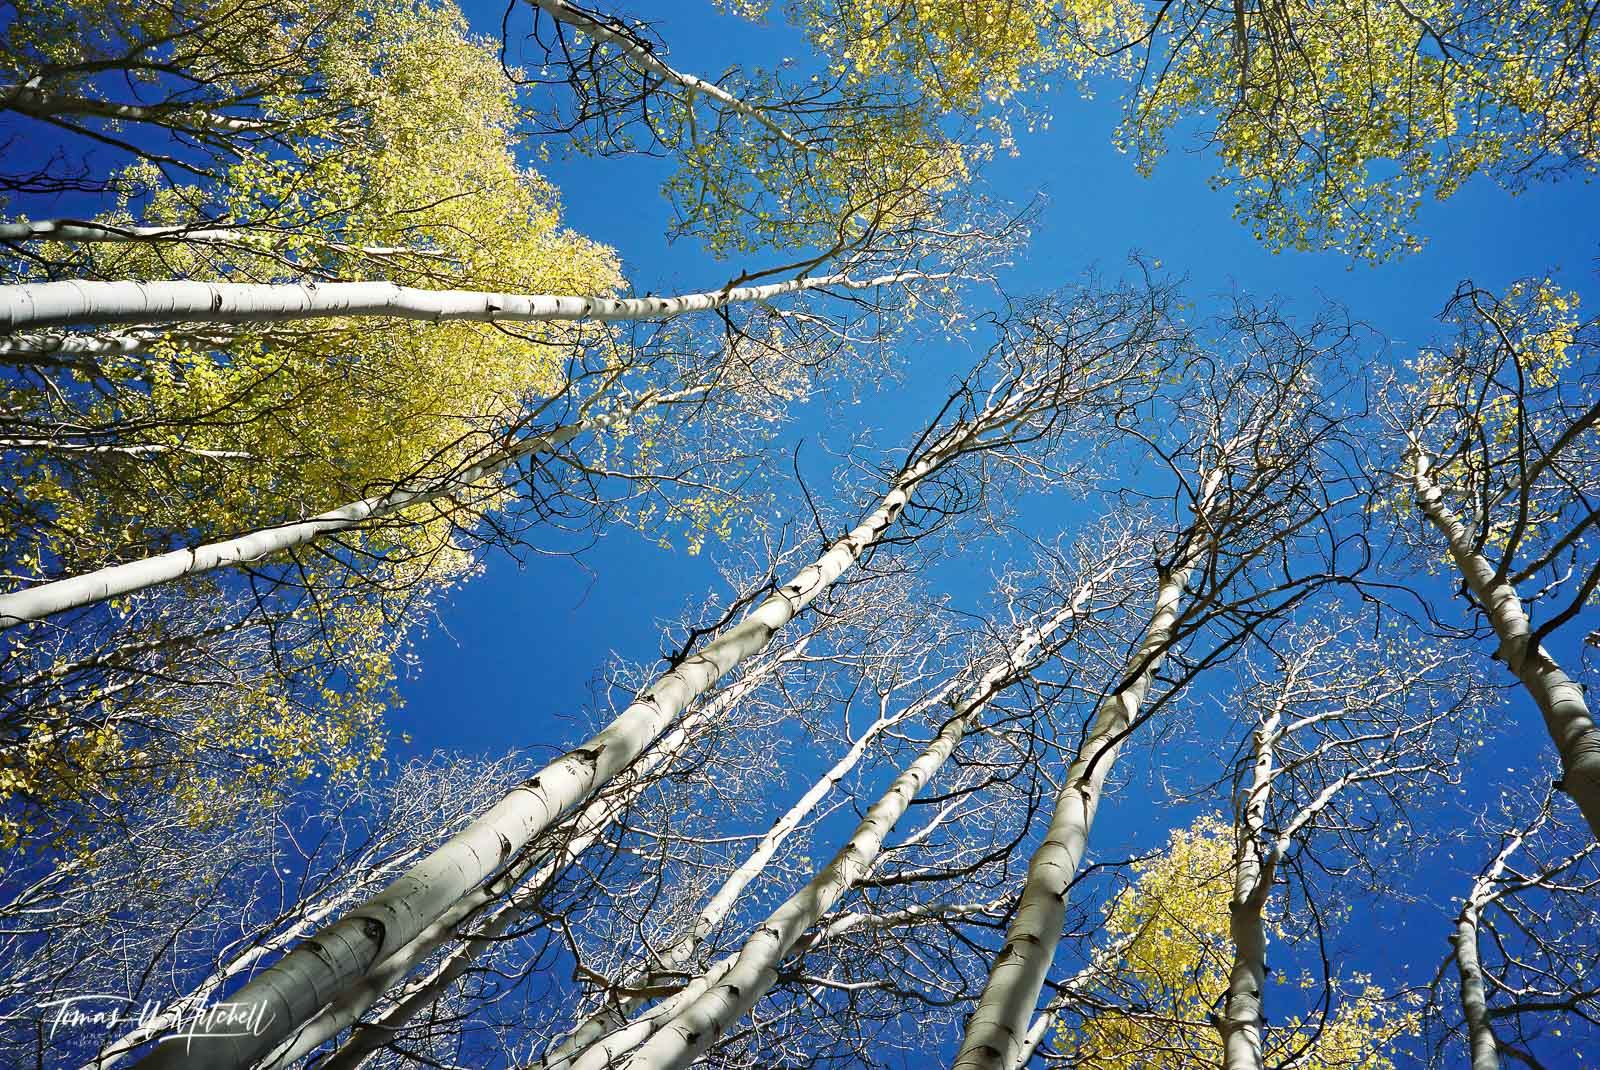 limited edition, fine art, prints, photograph, film, utah, wasatch cache national forest, uinta mountains, autumn, sky, yellow, aspen, trees, photo